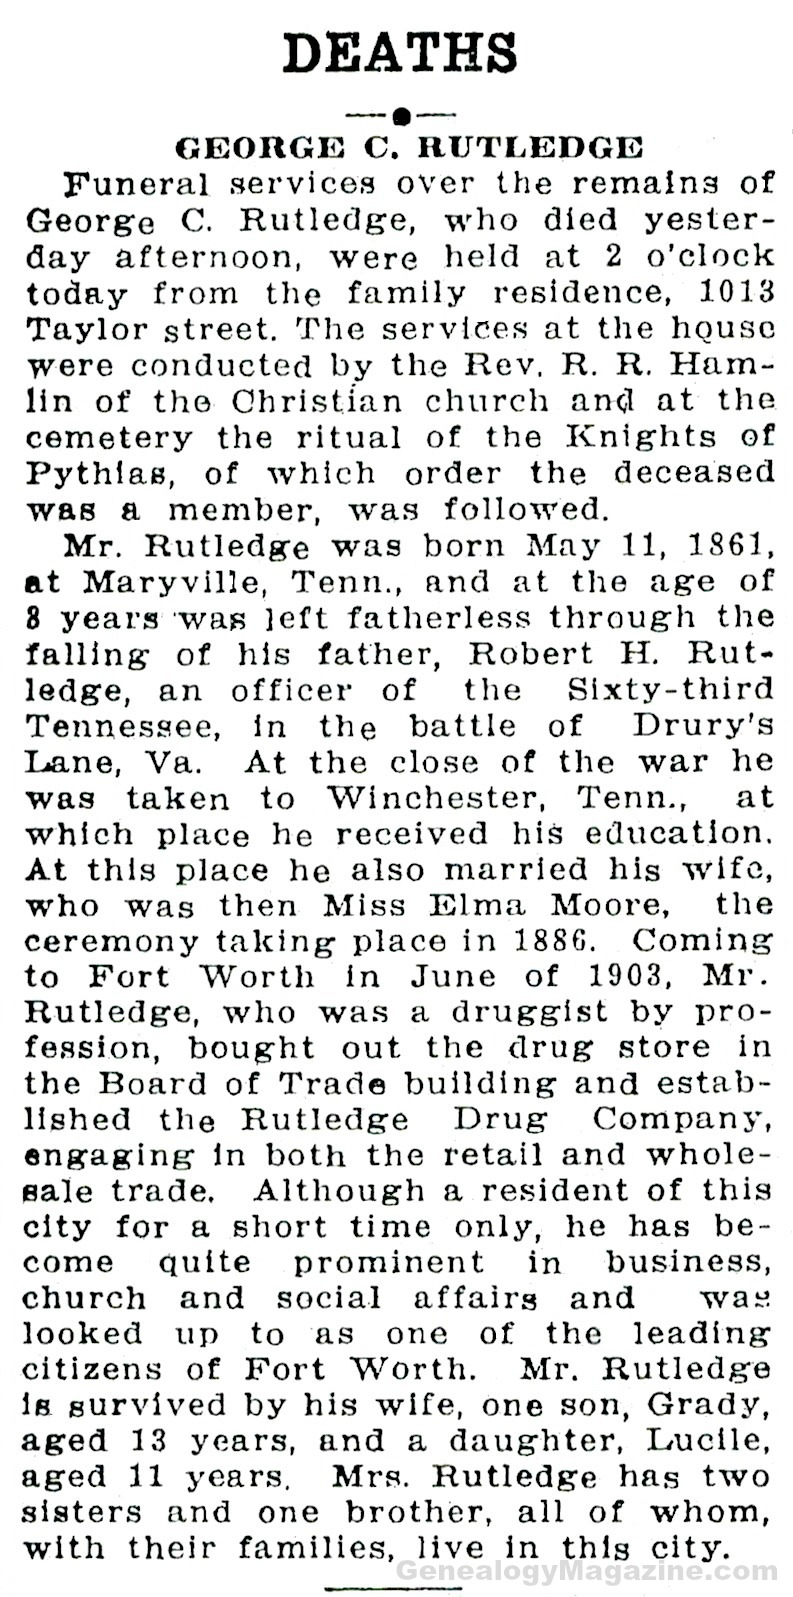 RUTLEDGE, George obituary